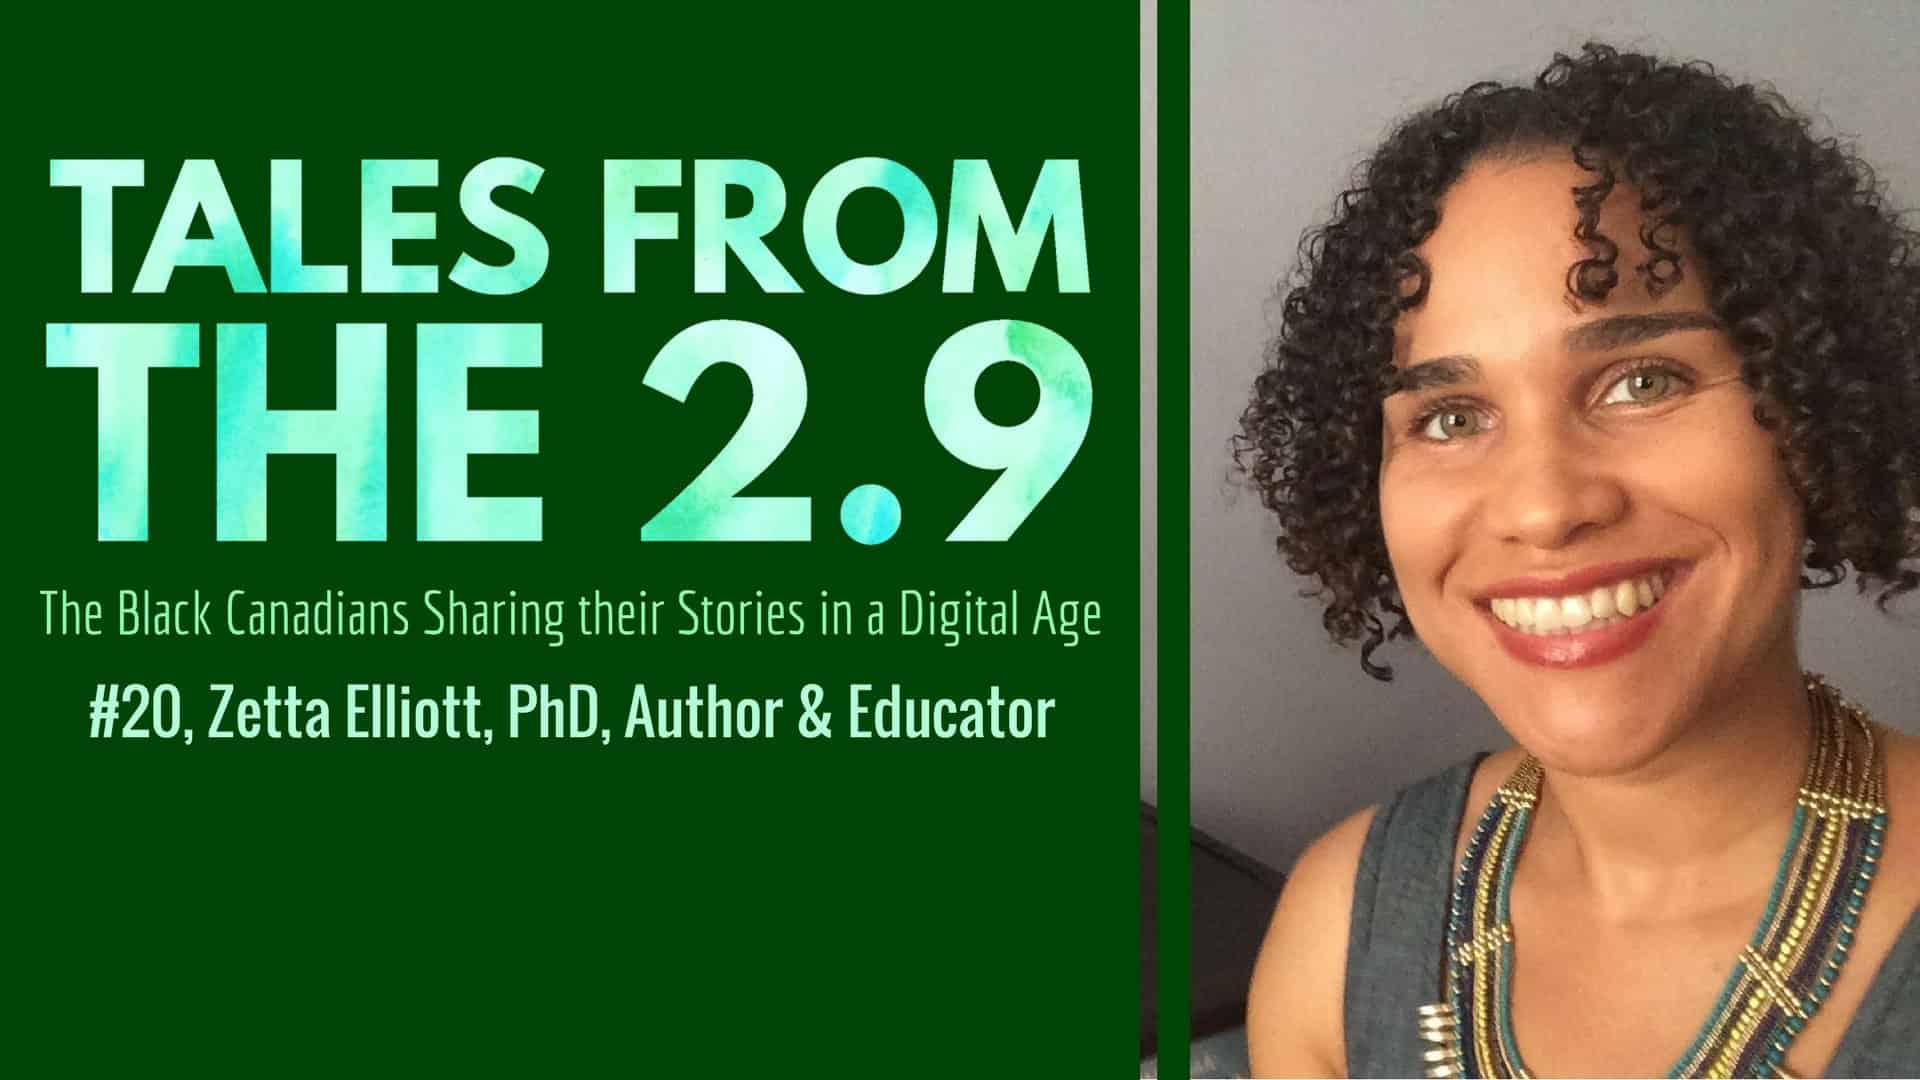 Tales from the 2.9 — The Black Canadians Sharing their Stories in a Digital Age — Vol. 2 #20, Zetta Elliott, PhD, Author & Educator (Featured Image)